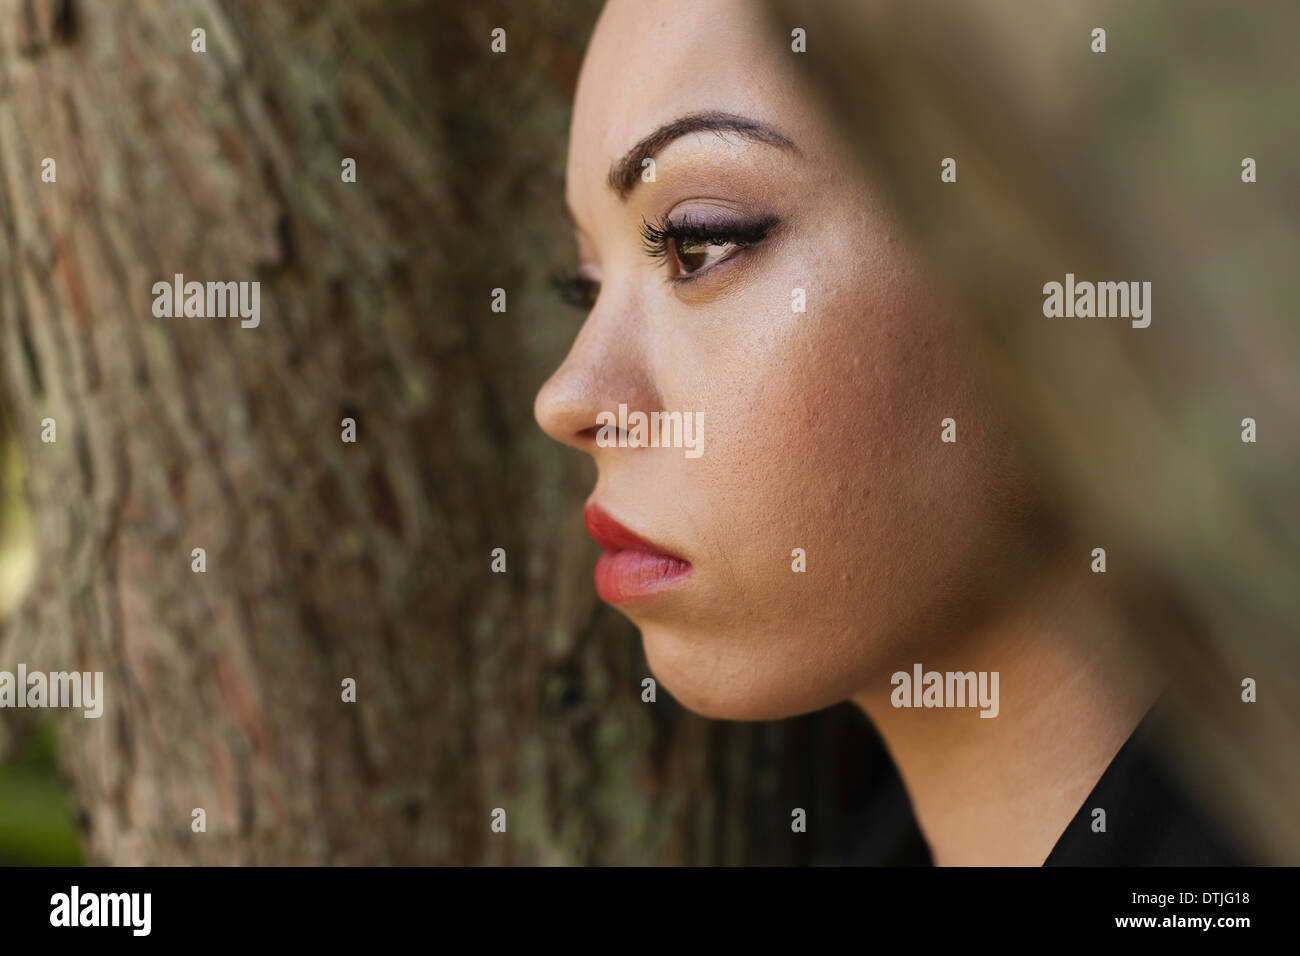 A young woman wearing makeup in a leather jacket  Pennsylvania USA - Stock Image